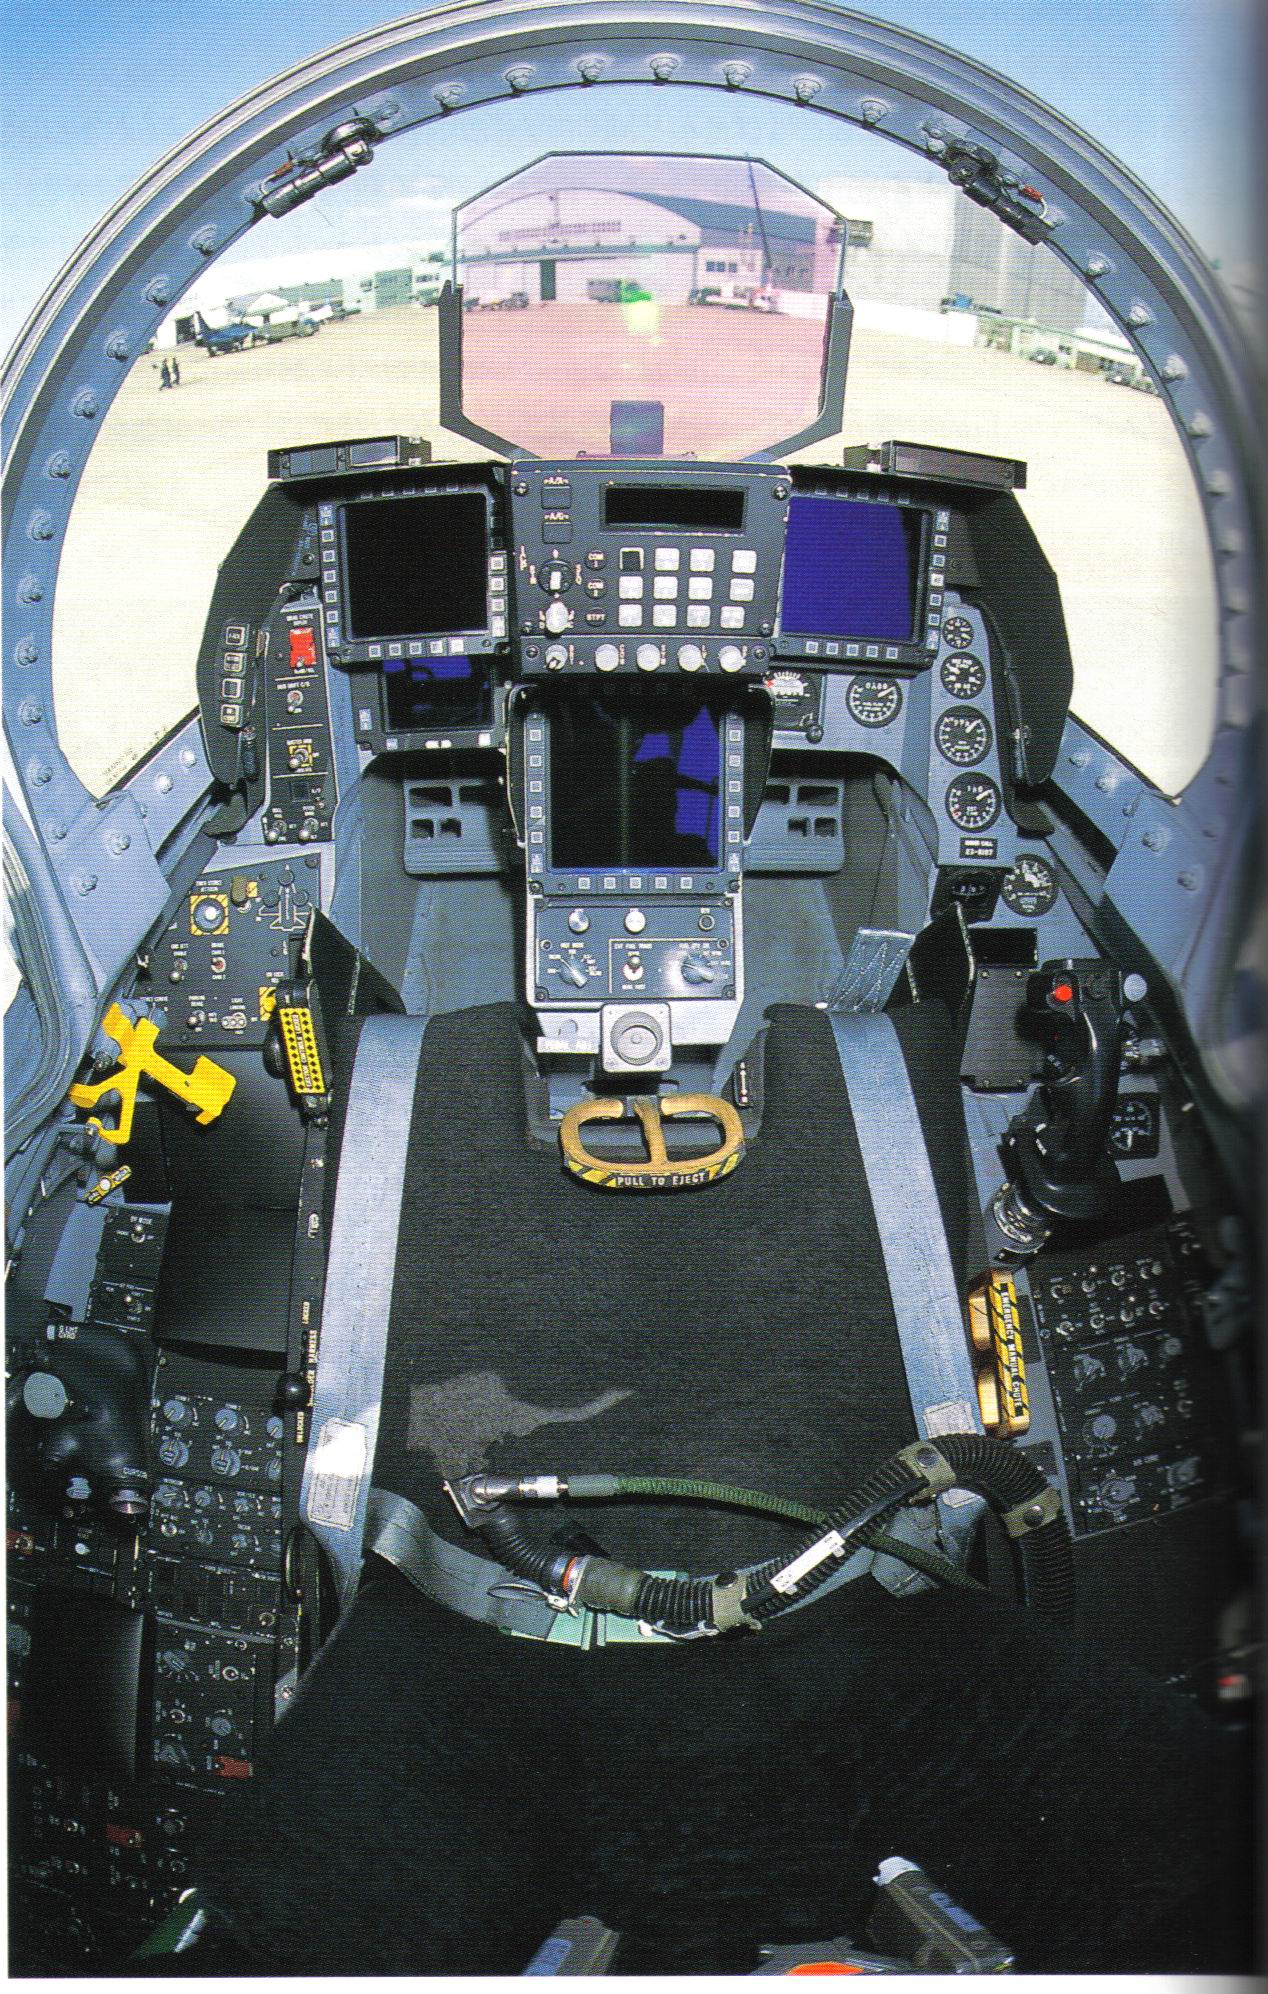 F-16 cockpit pictures - F-16 Design & Construction